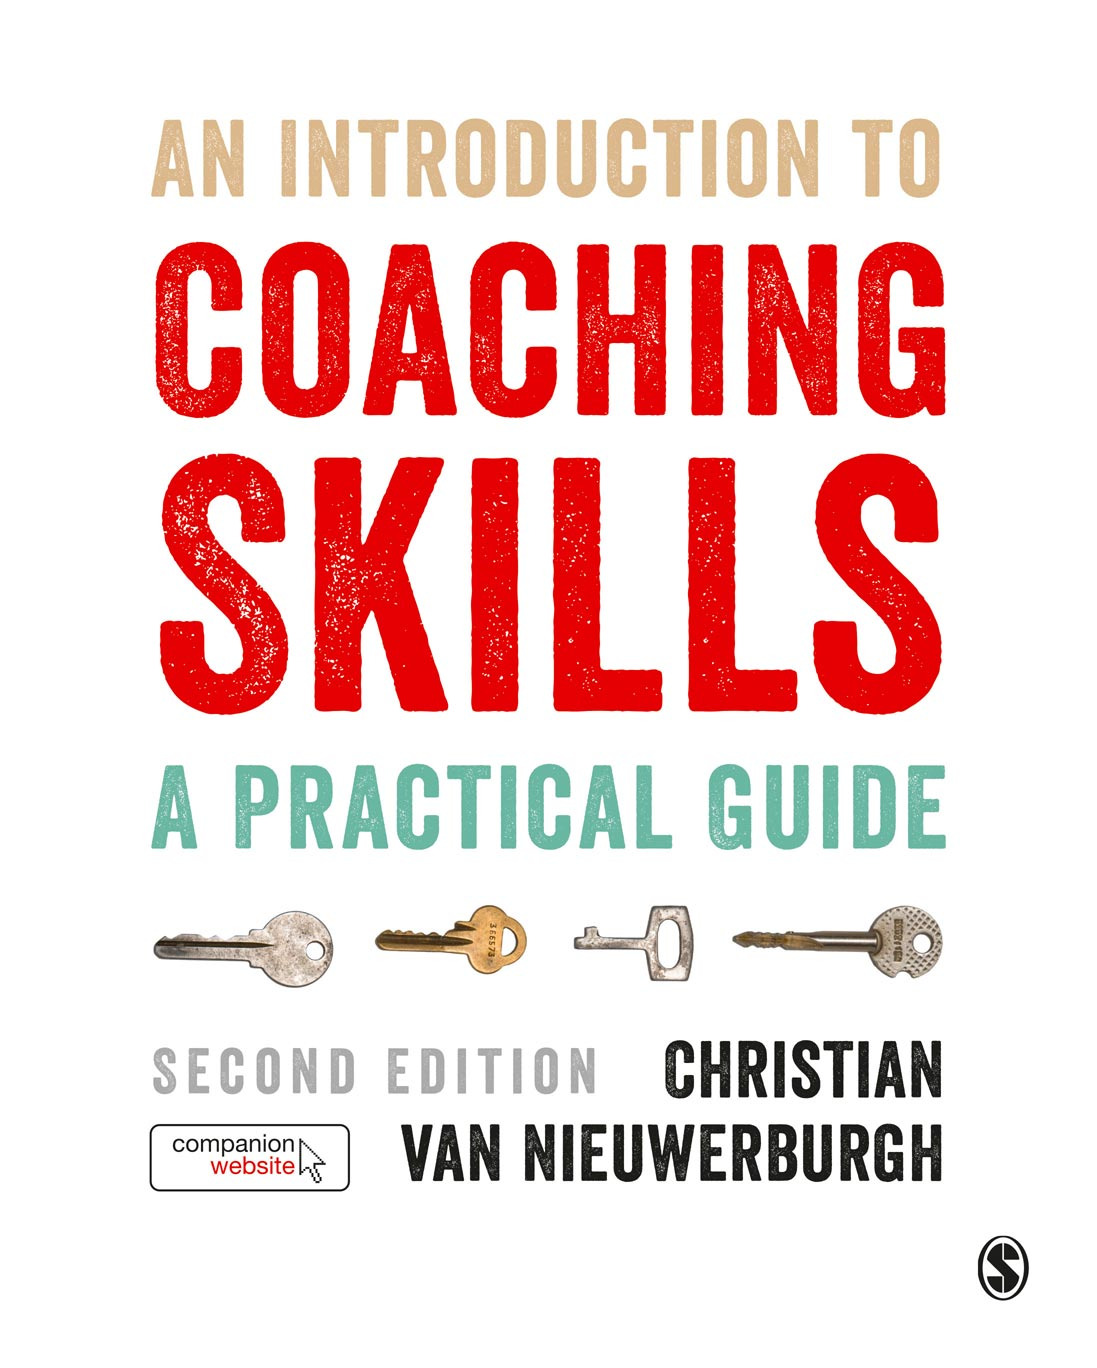 An Introduction to Coaching Skills: A Practical Guide cover image